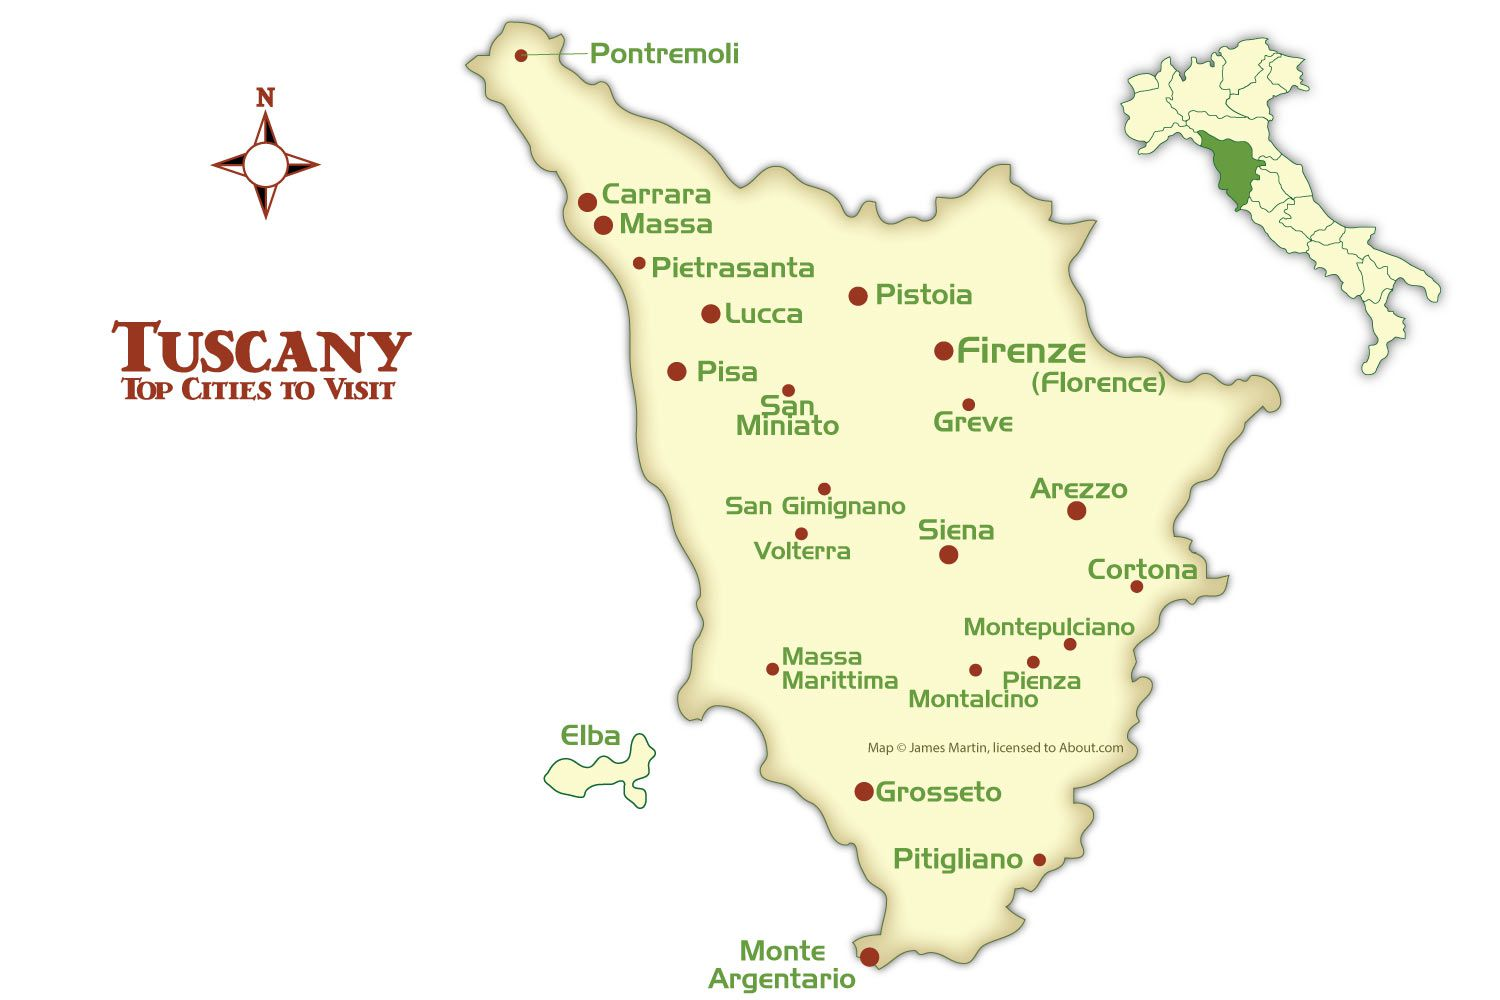 Map Of Italy Showing Pisa.Tuscany Cities Map And Tourism Guide